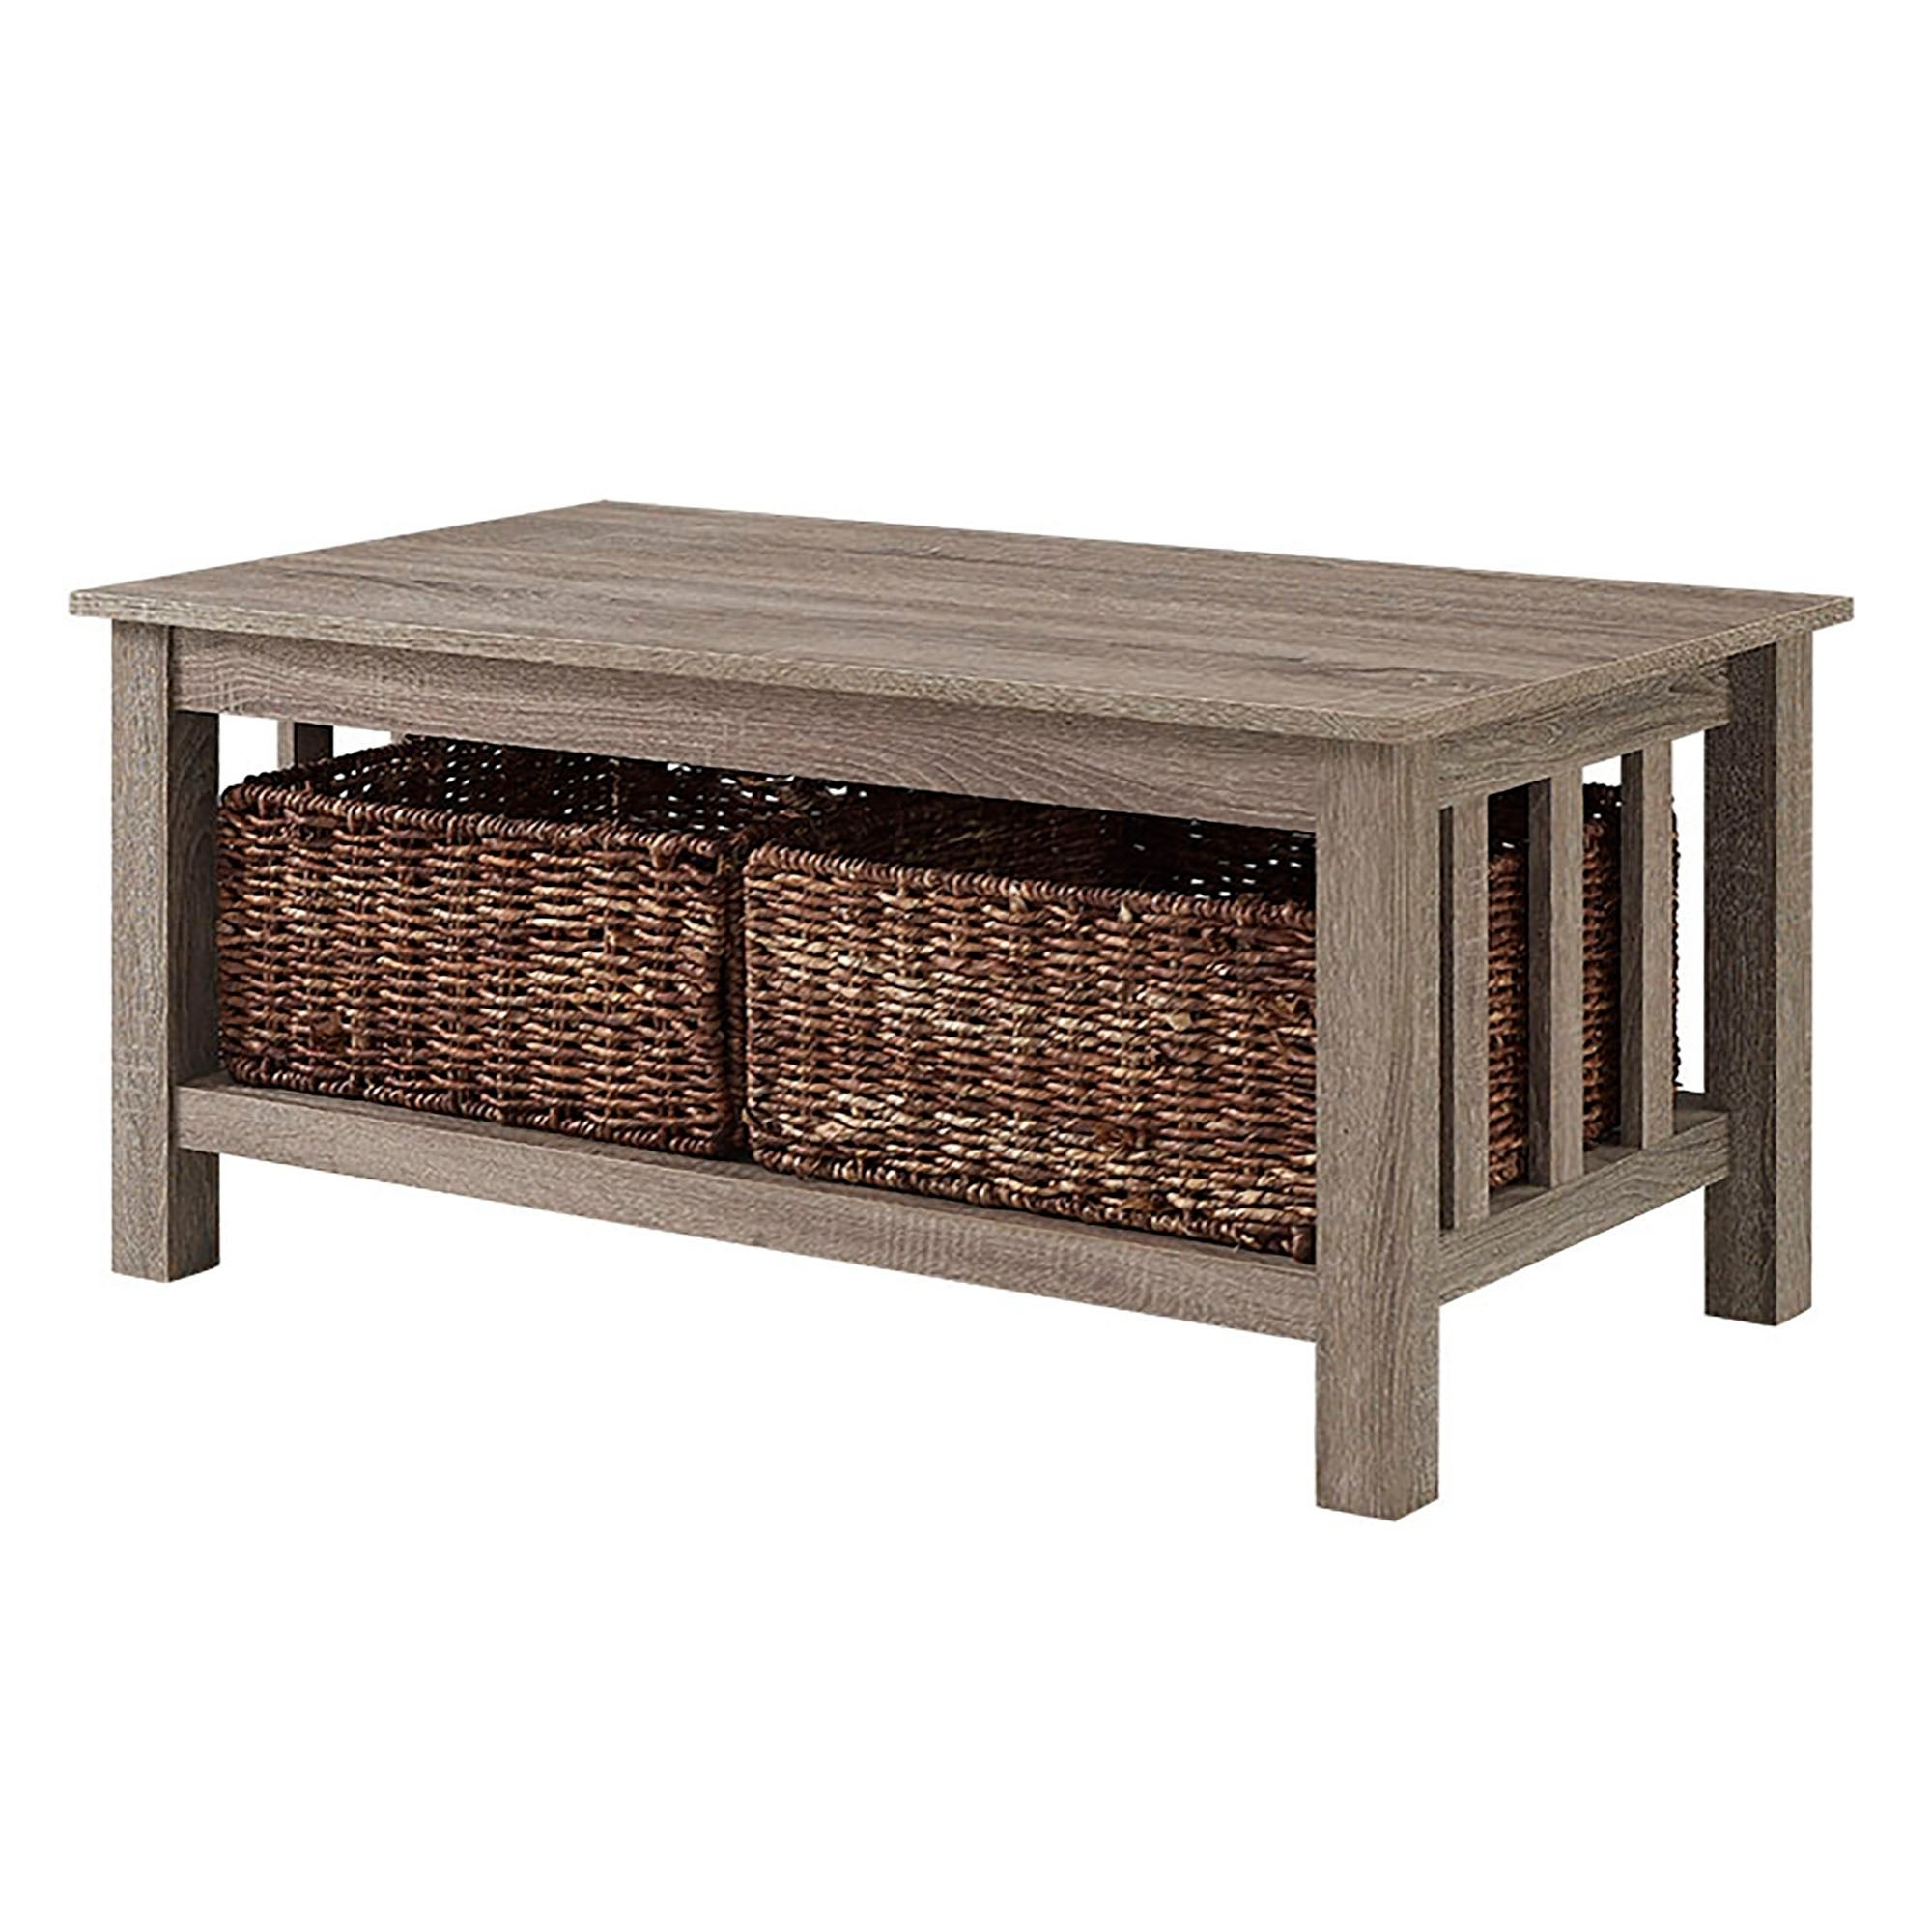 Featured Photo of Rustic Coffee Tables With Wicker Storage Baskets